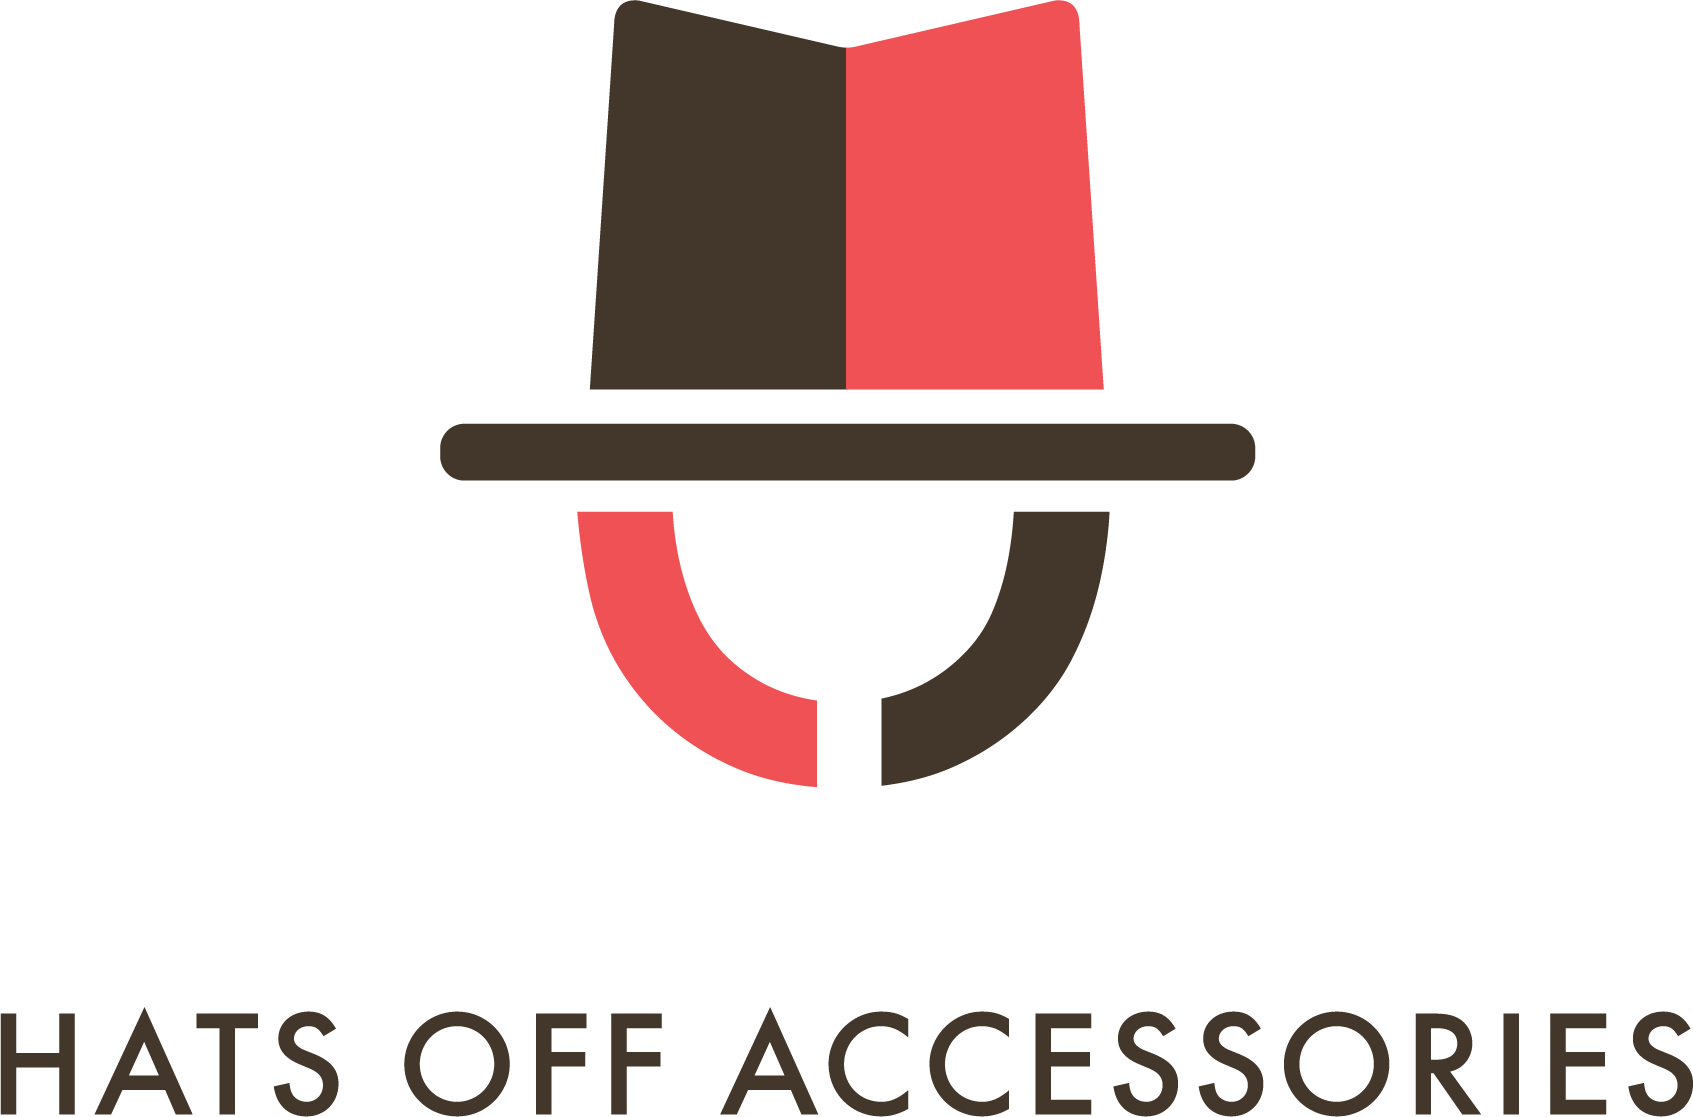 hatsoffaccessories